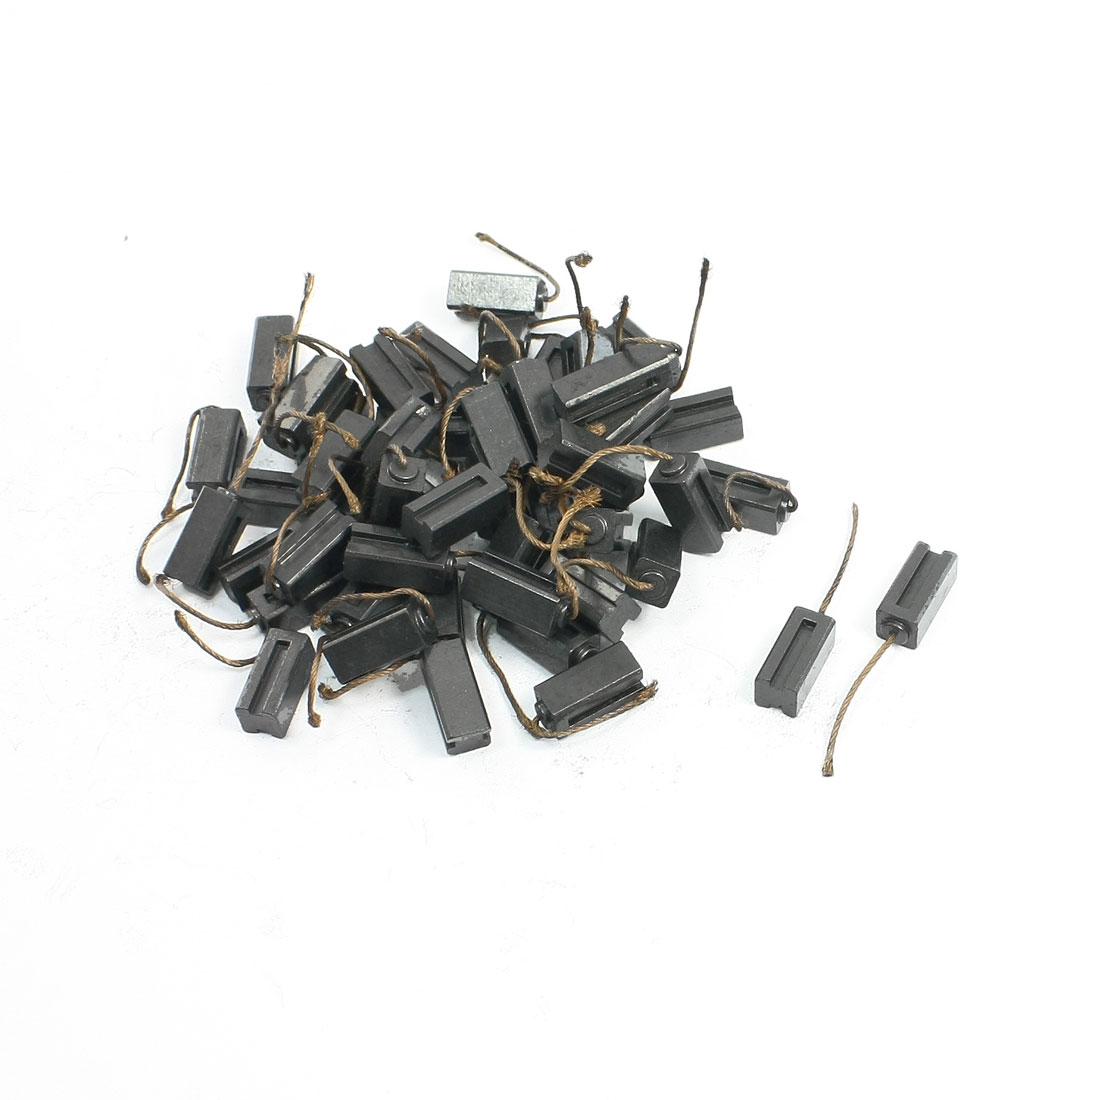 "50 Pcs Electric Drill Motor Carbon Brushes 1/4"" x 1/4"" x 9/16"""